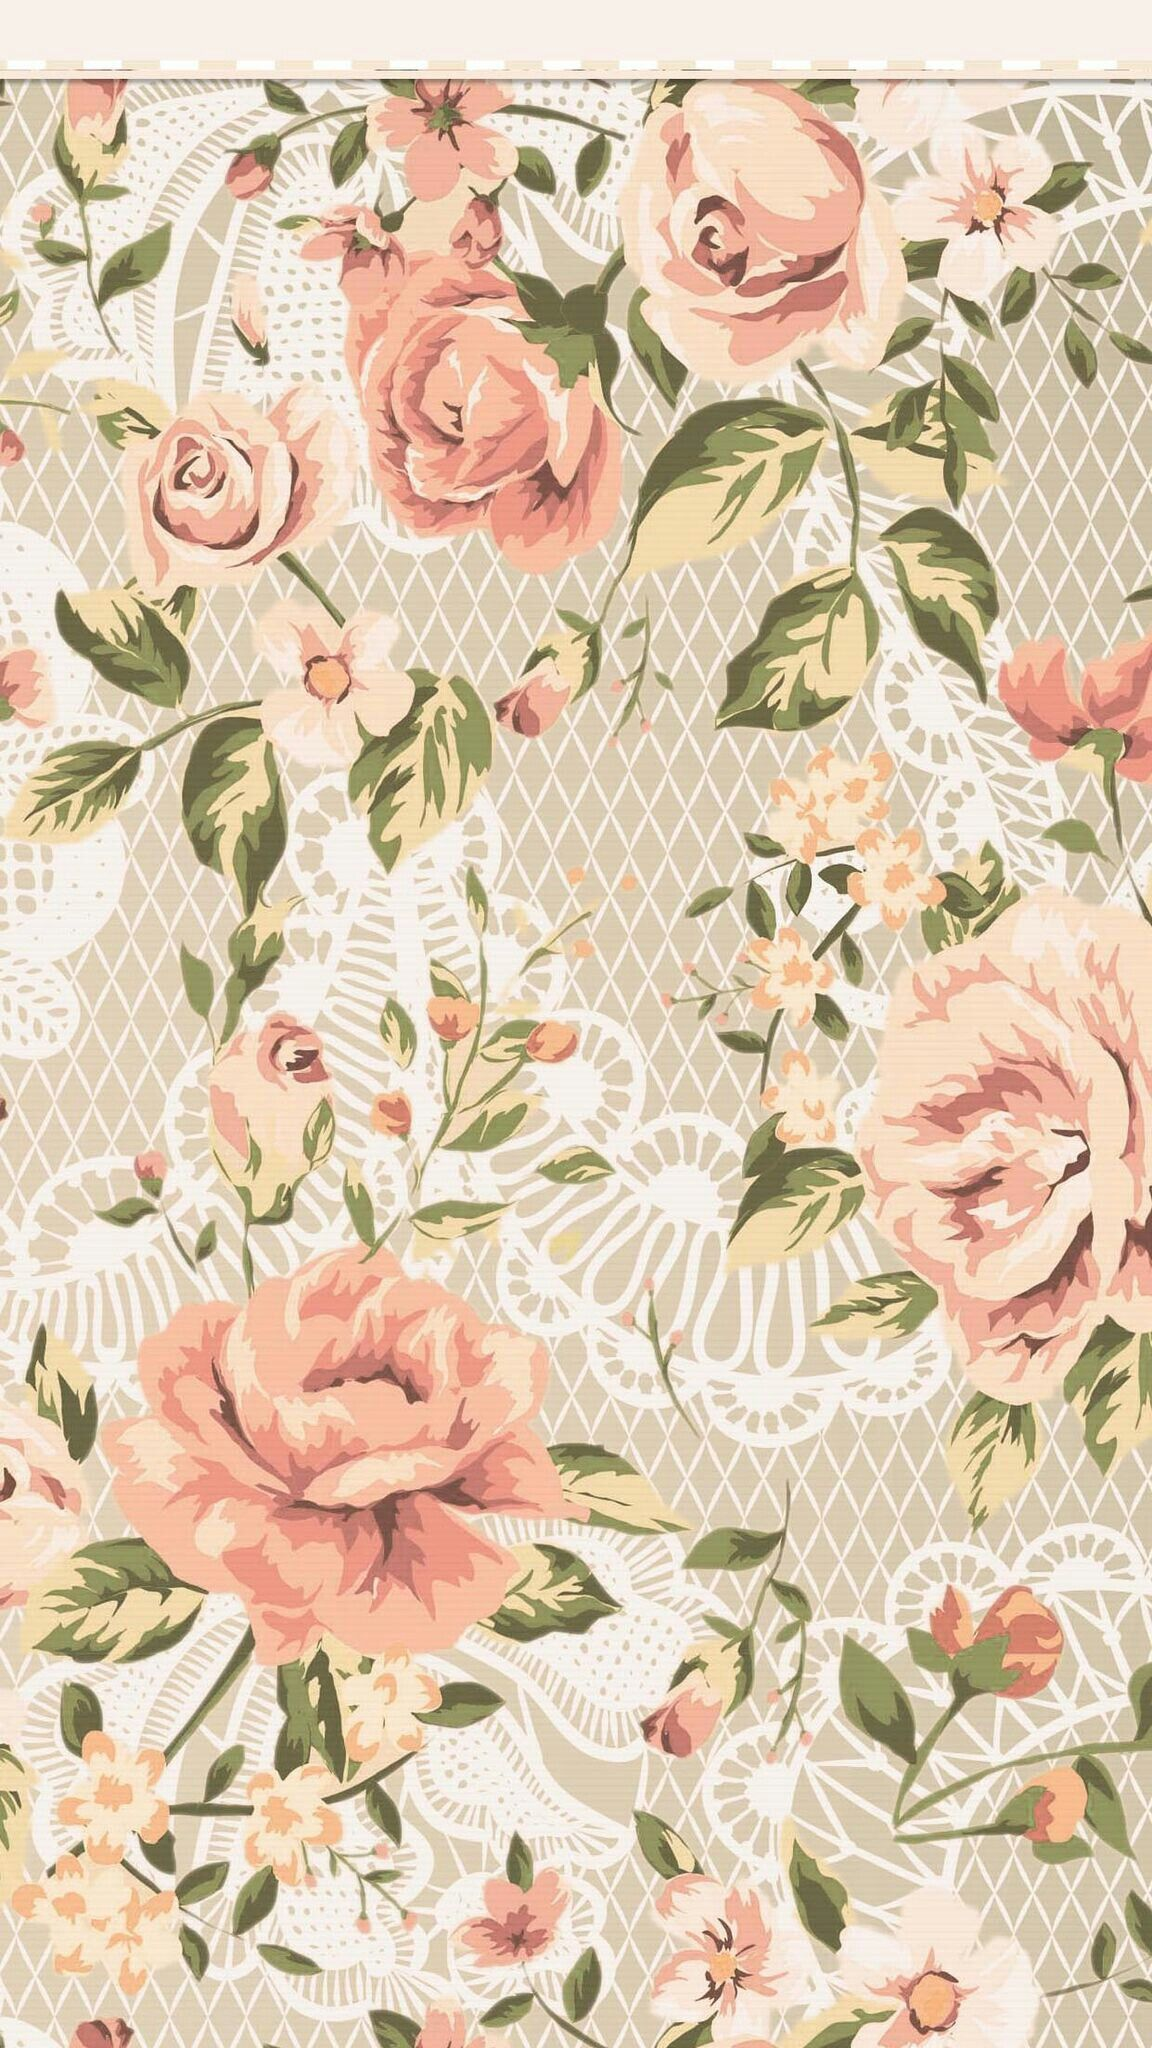 Iphone Wall Tjn Vintage Flower Backgrounds Iphone Wallpaper Vintage